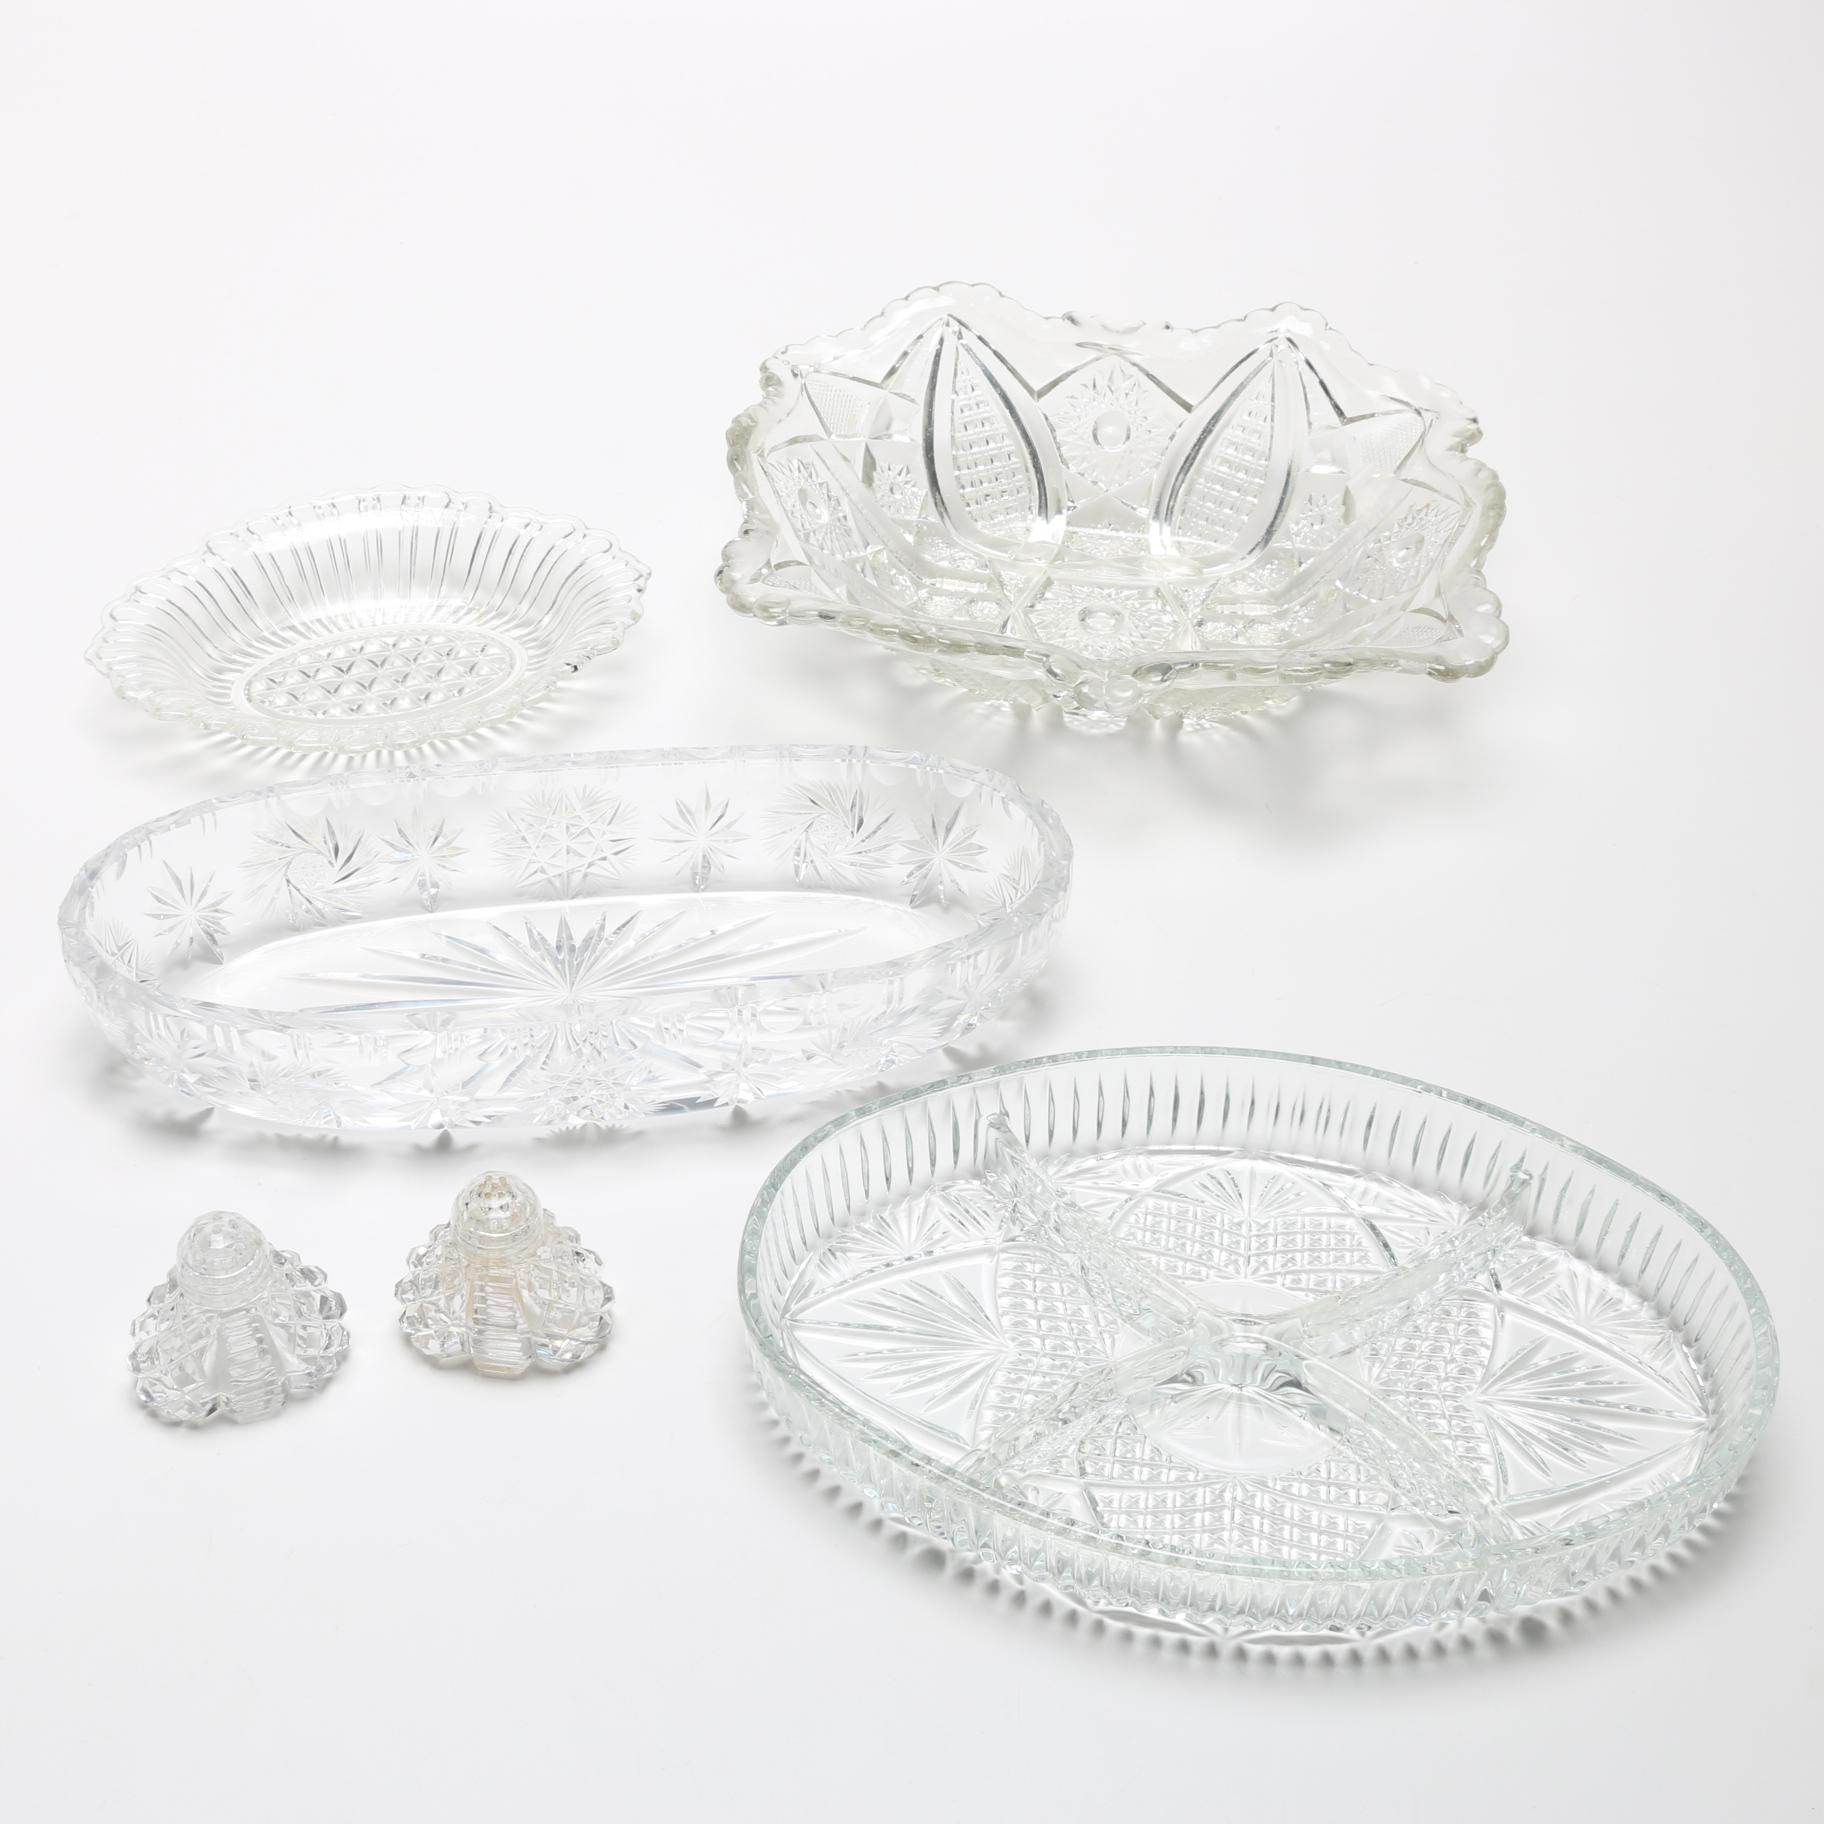 Pressed Glass Tableware and Décor